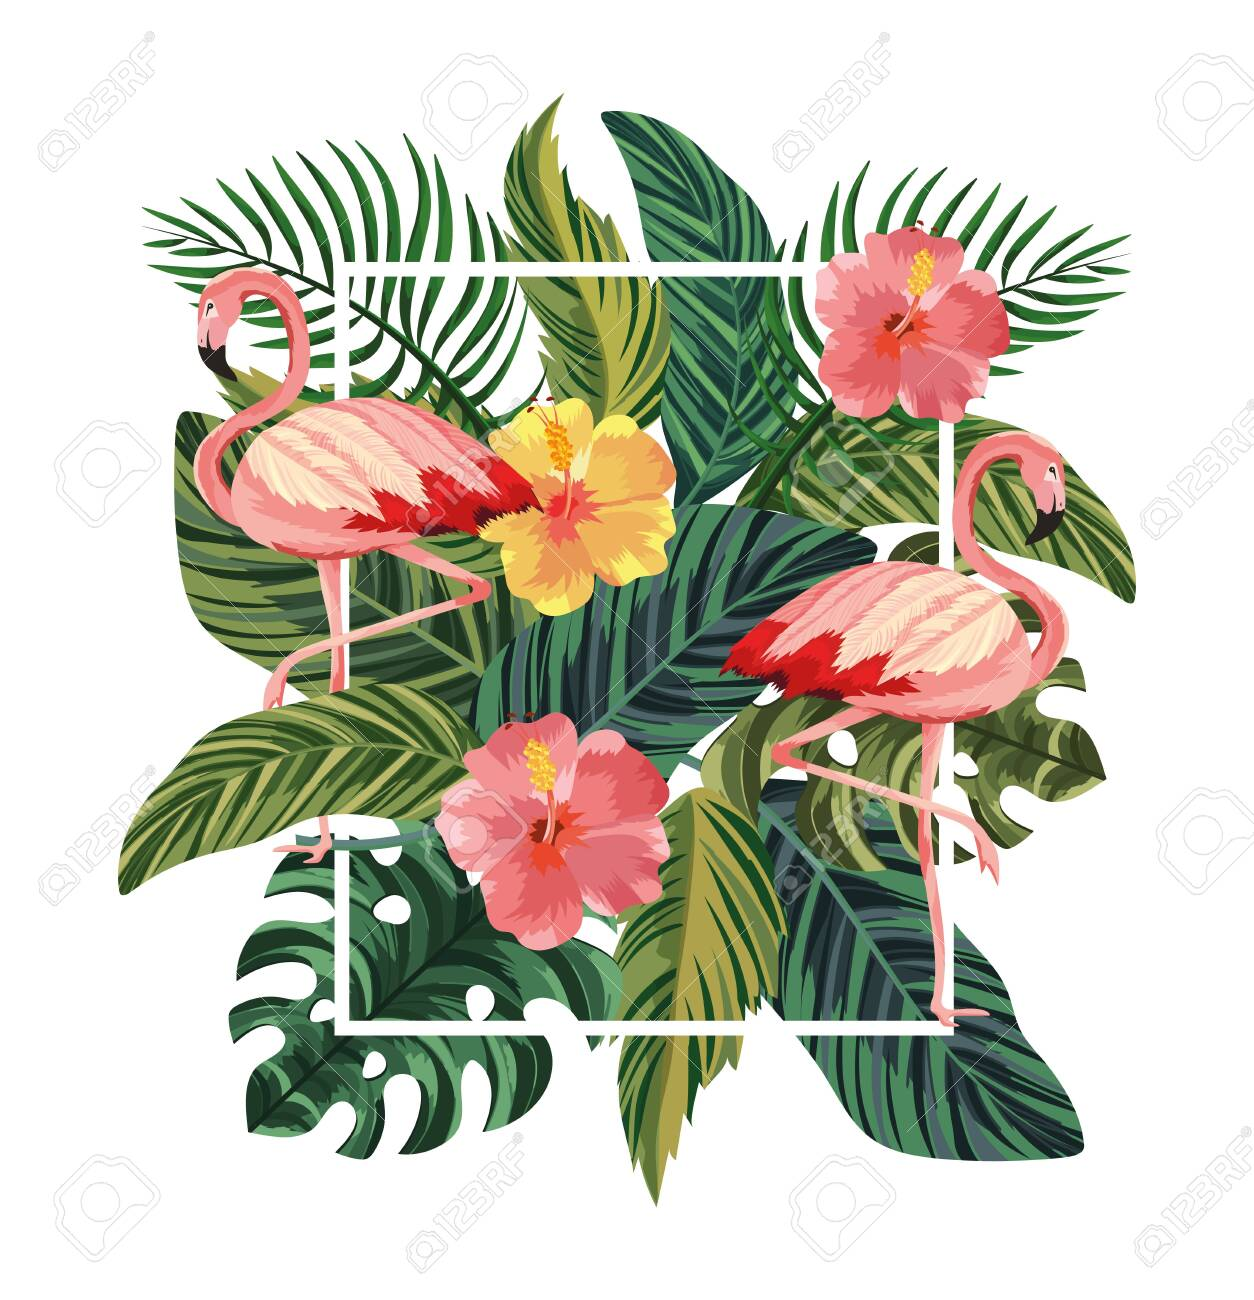 frame with flamingos and tropical flowers with leaves vector illustration - 124357100